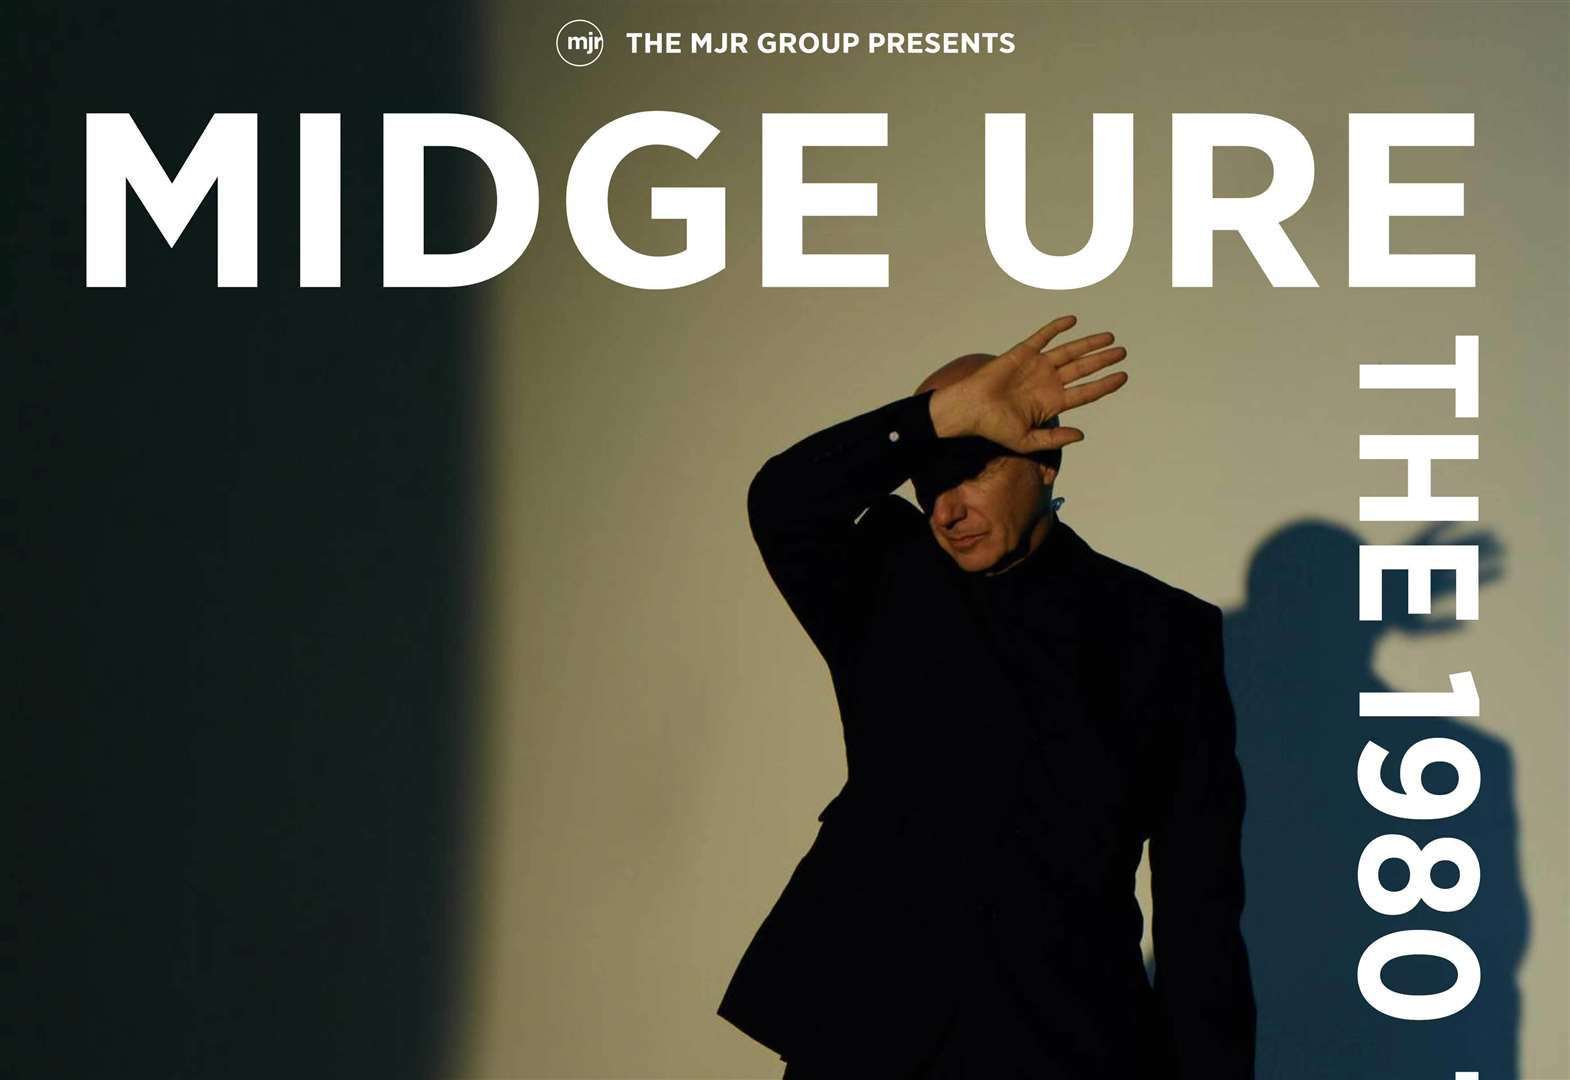 Tickets for Midge Ure's Cambridge gig next year to go on sale this week